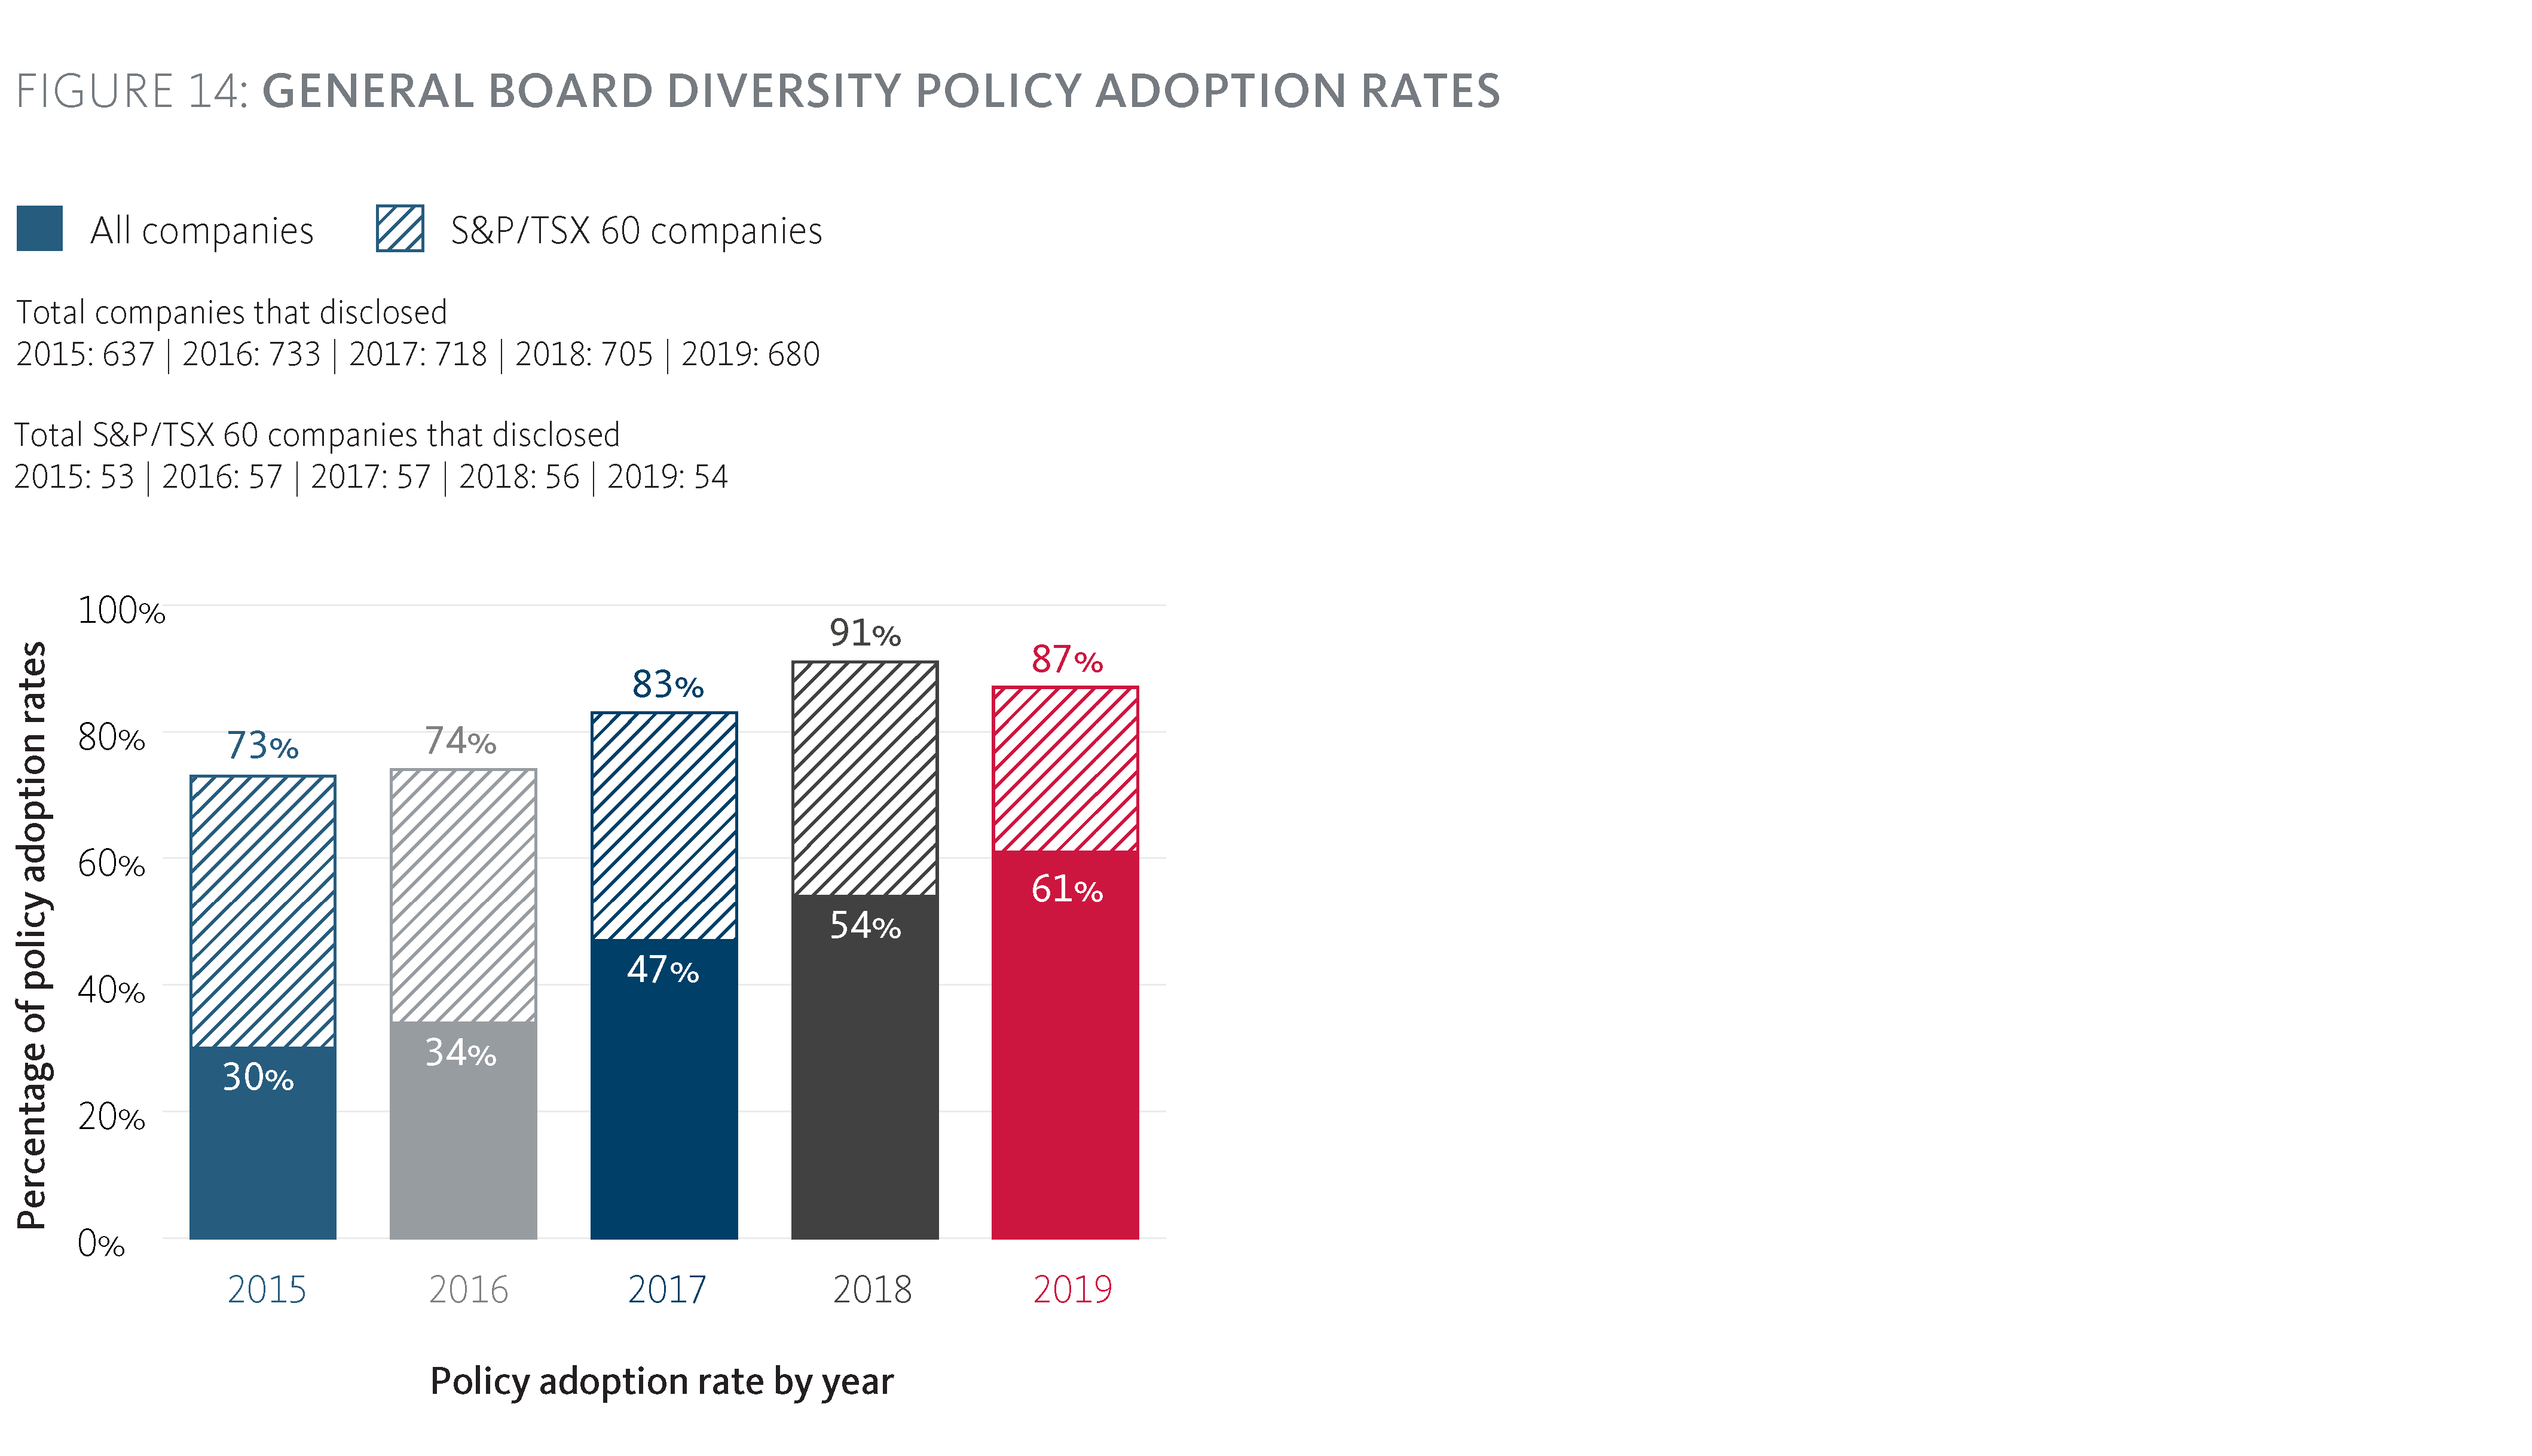 General Board Diversity Policy Adoption Rates